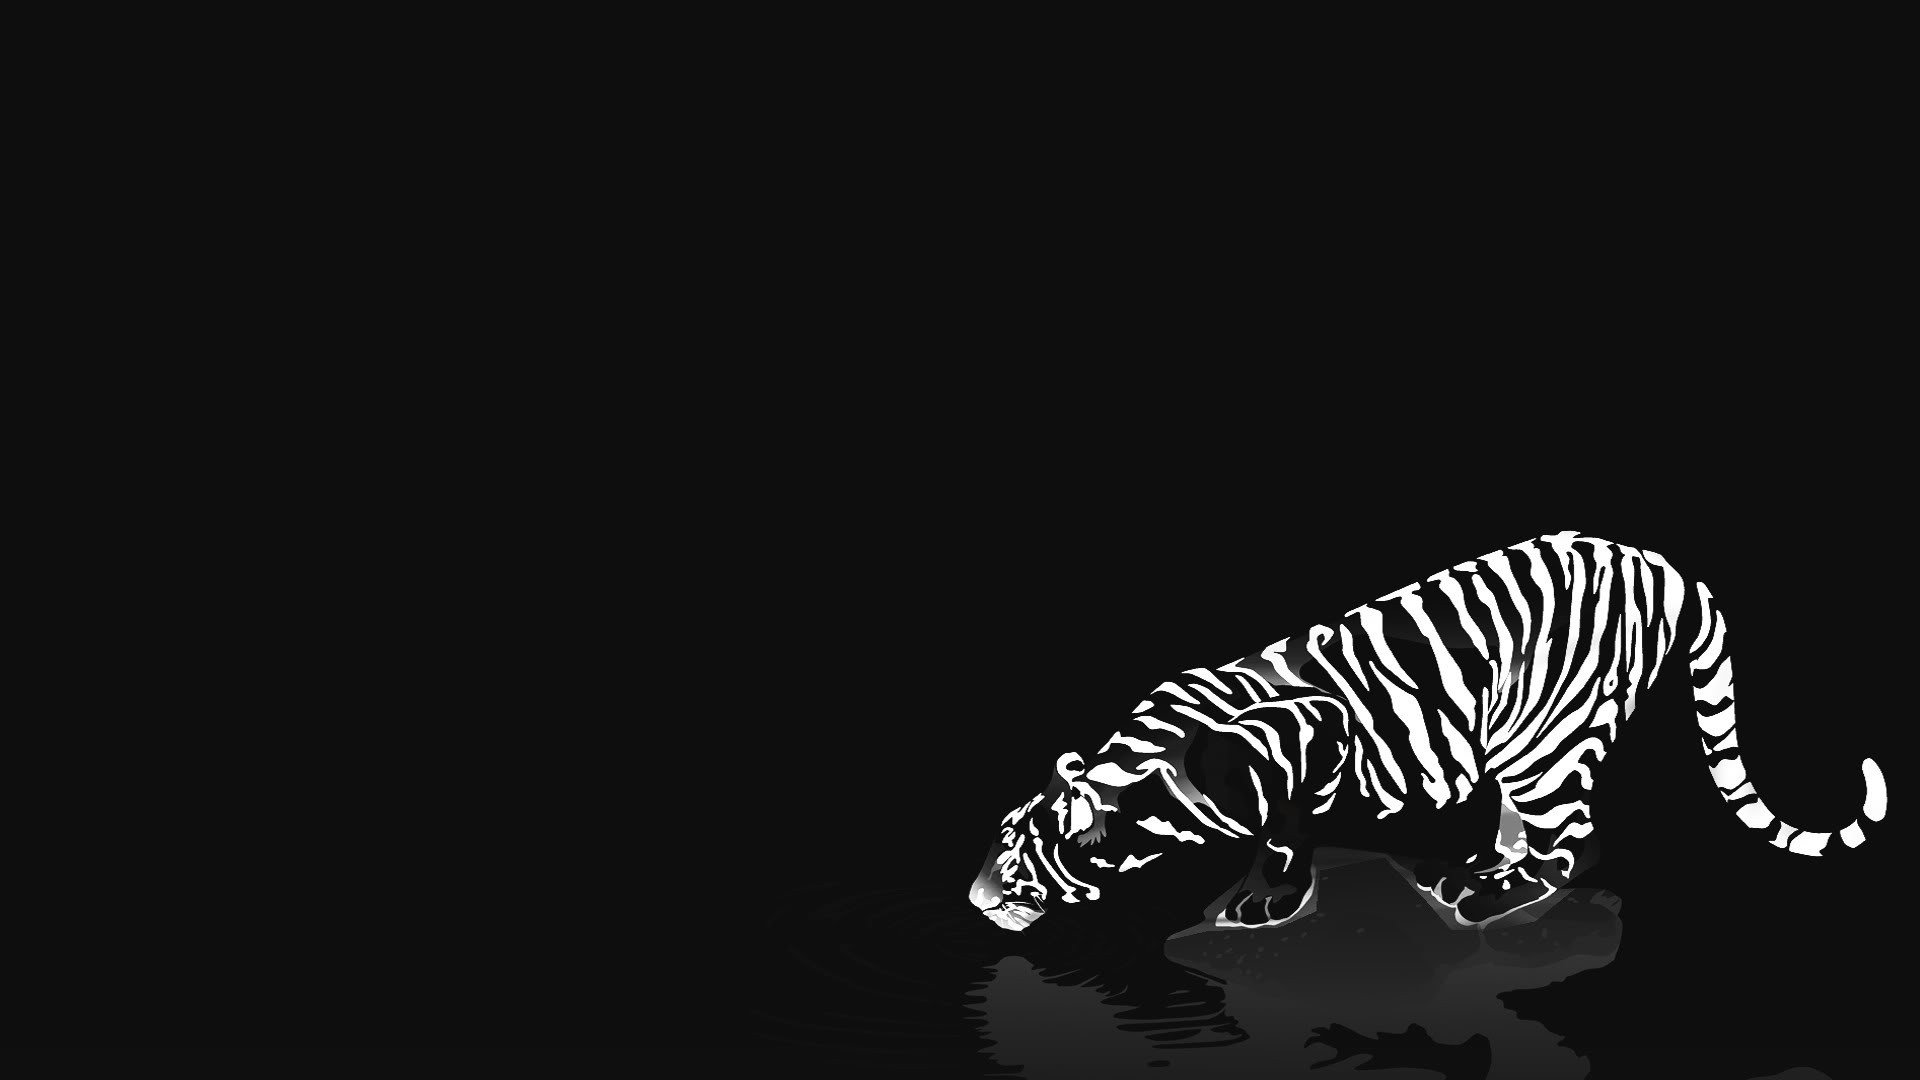 1920x1080px black and white tiger wallpaper - wallpapersafari